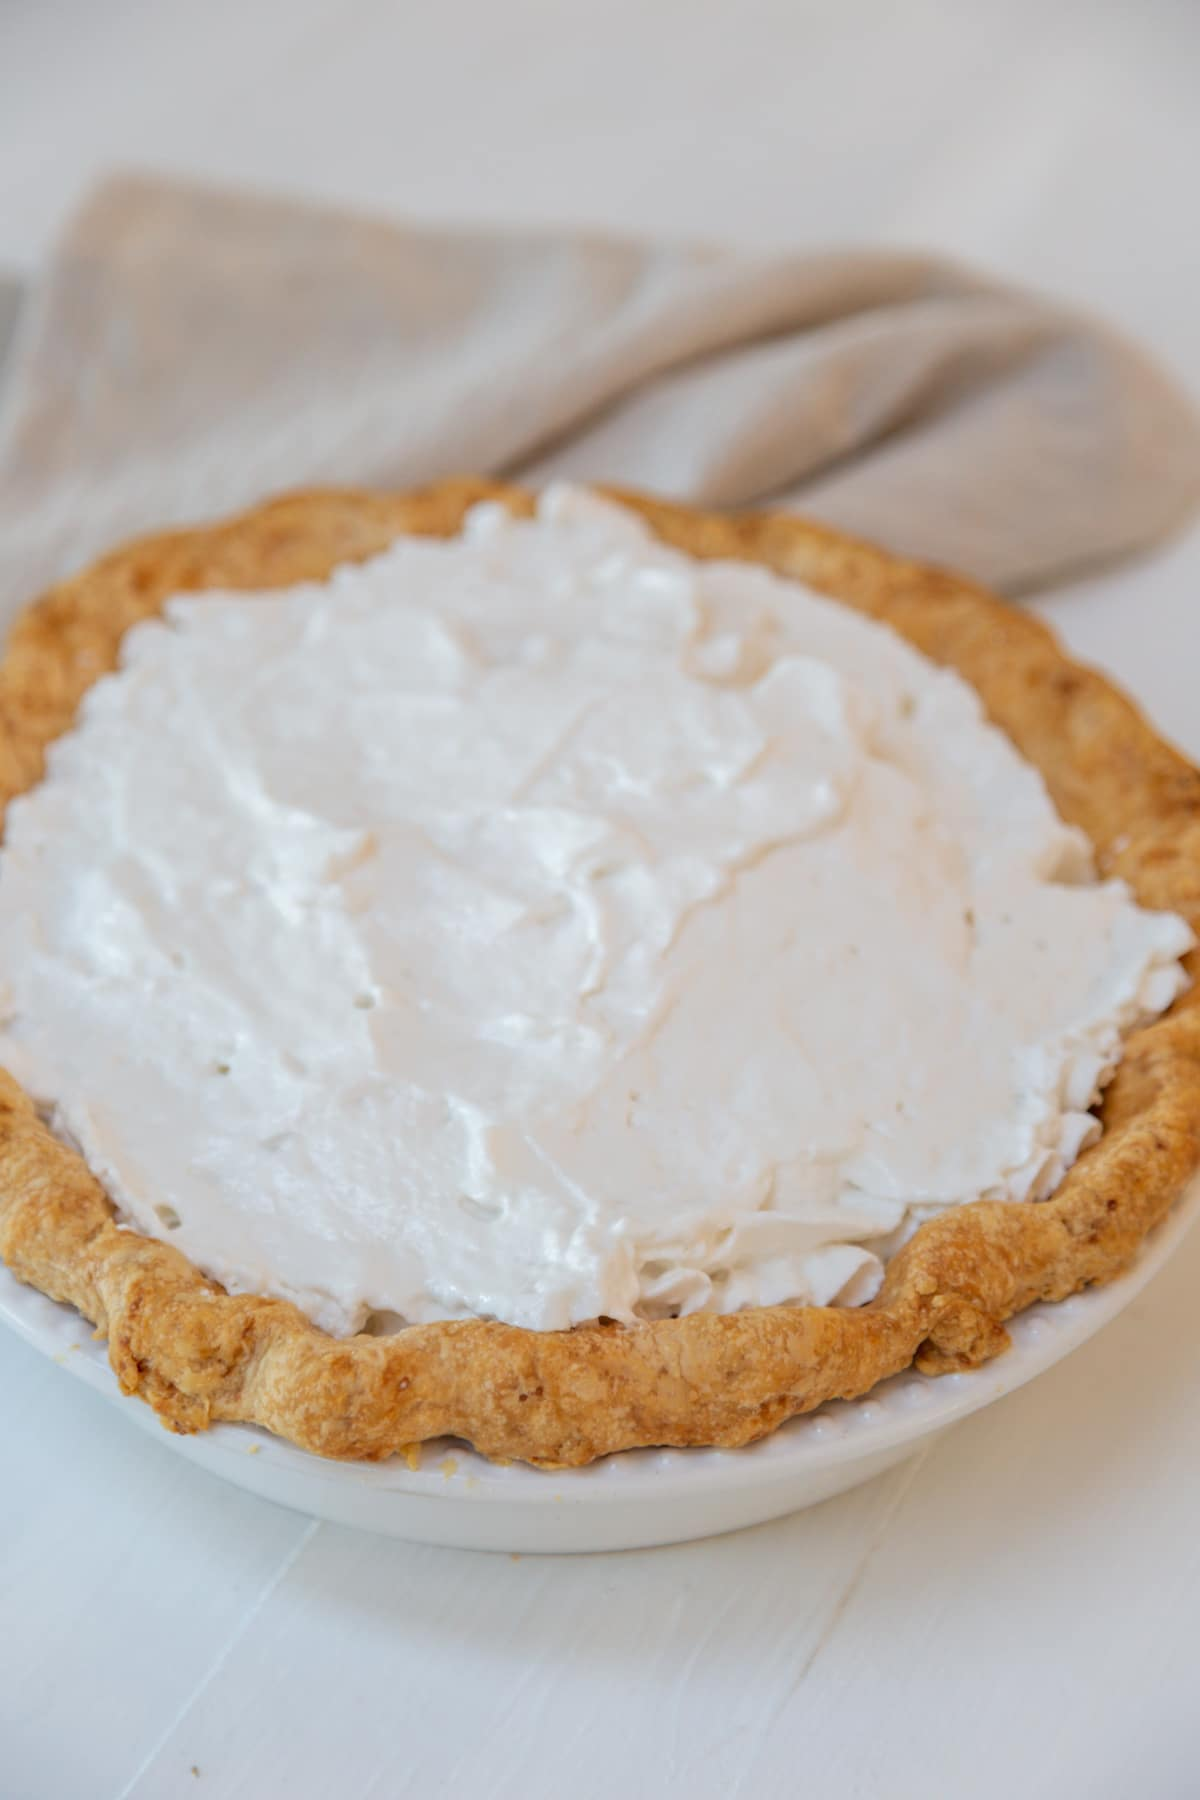 A pie with whipped cream topping.